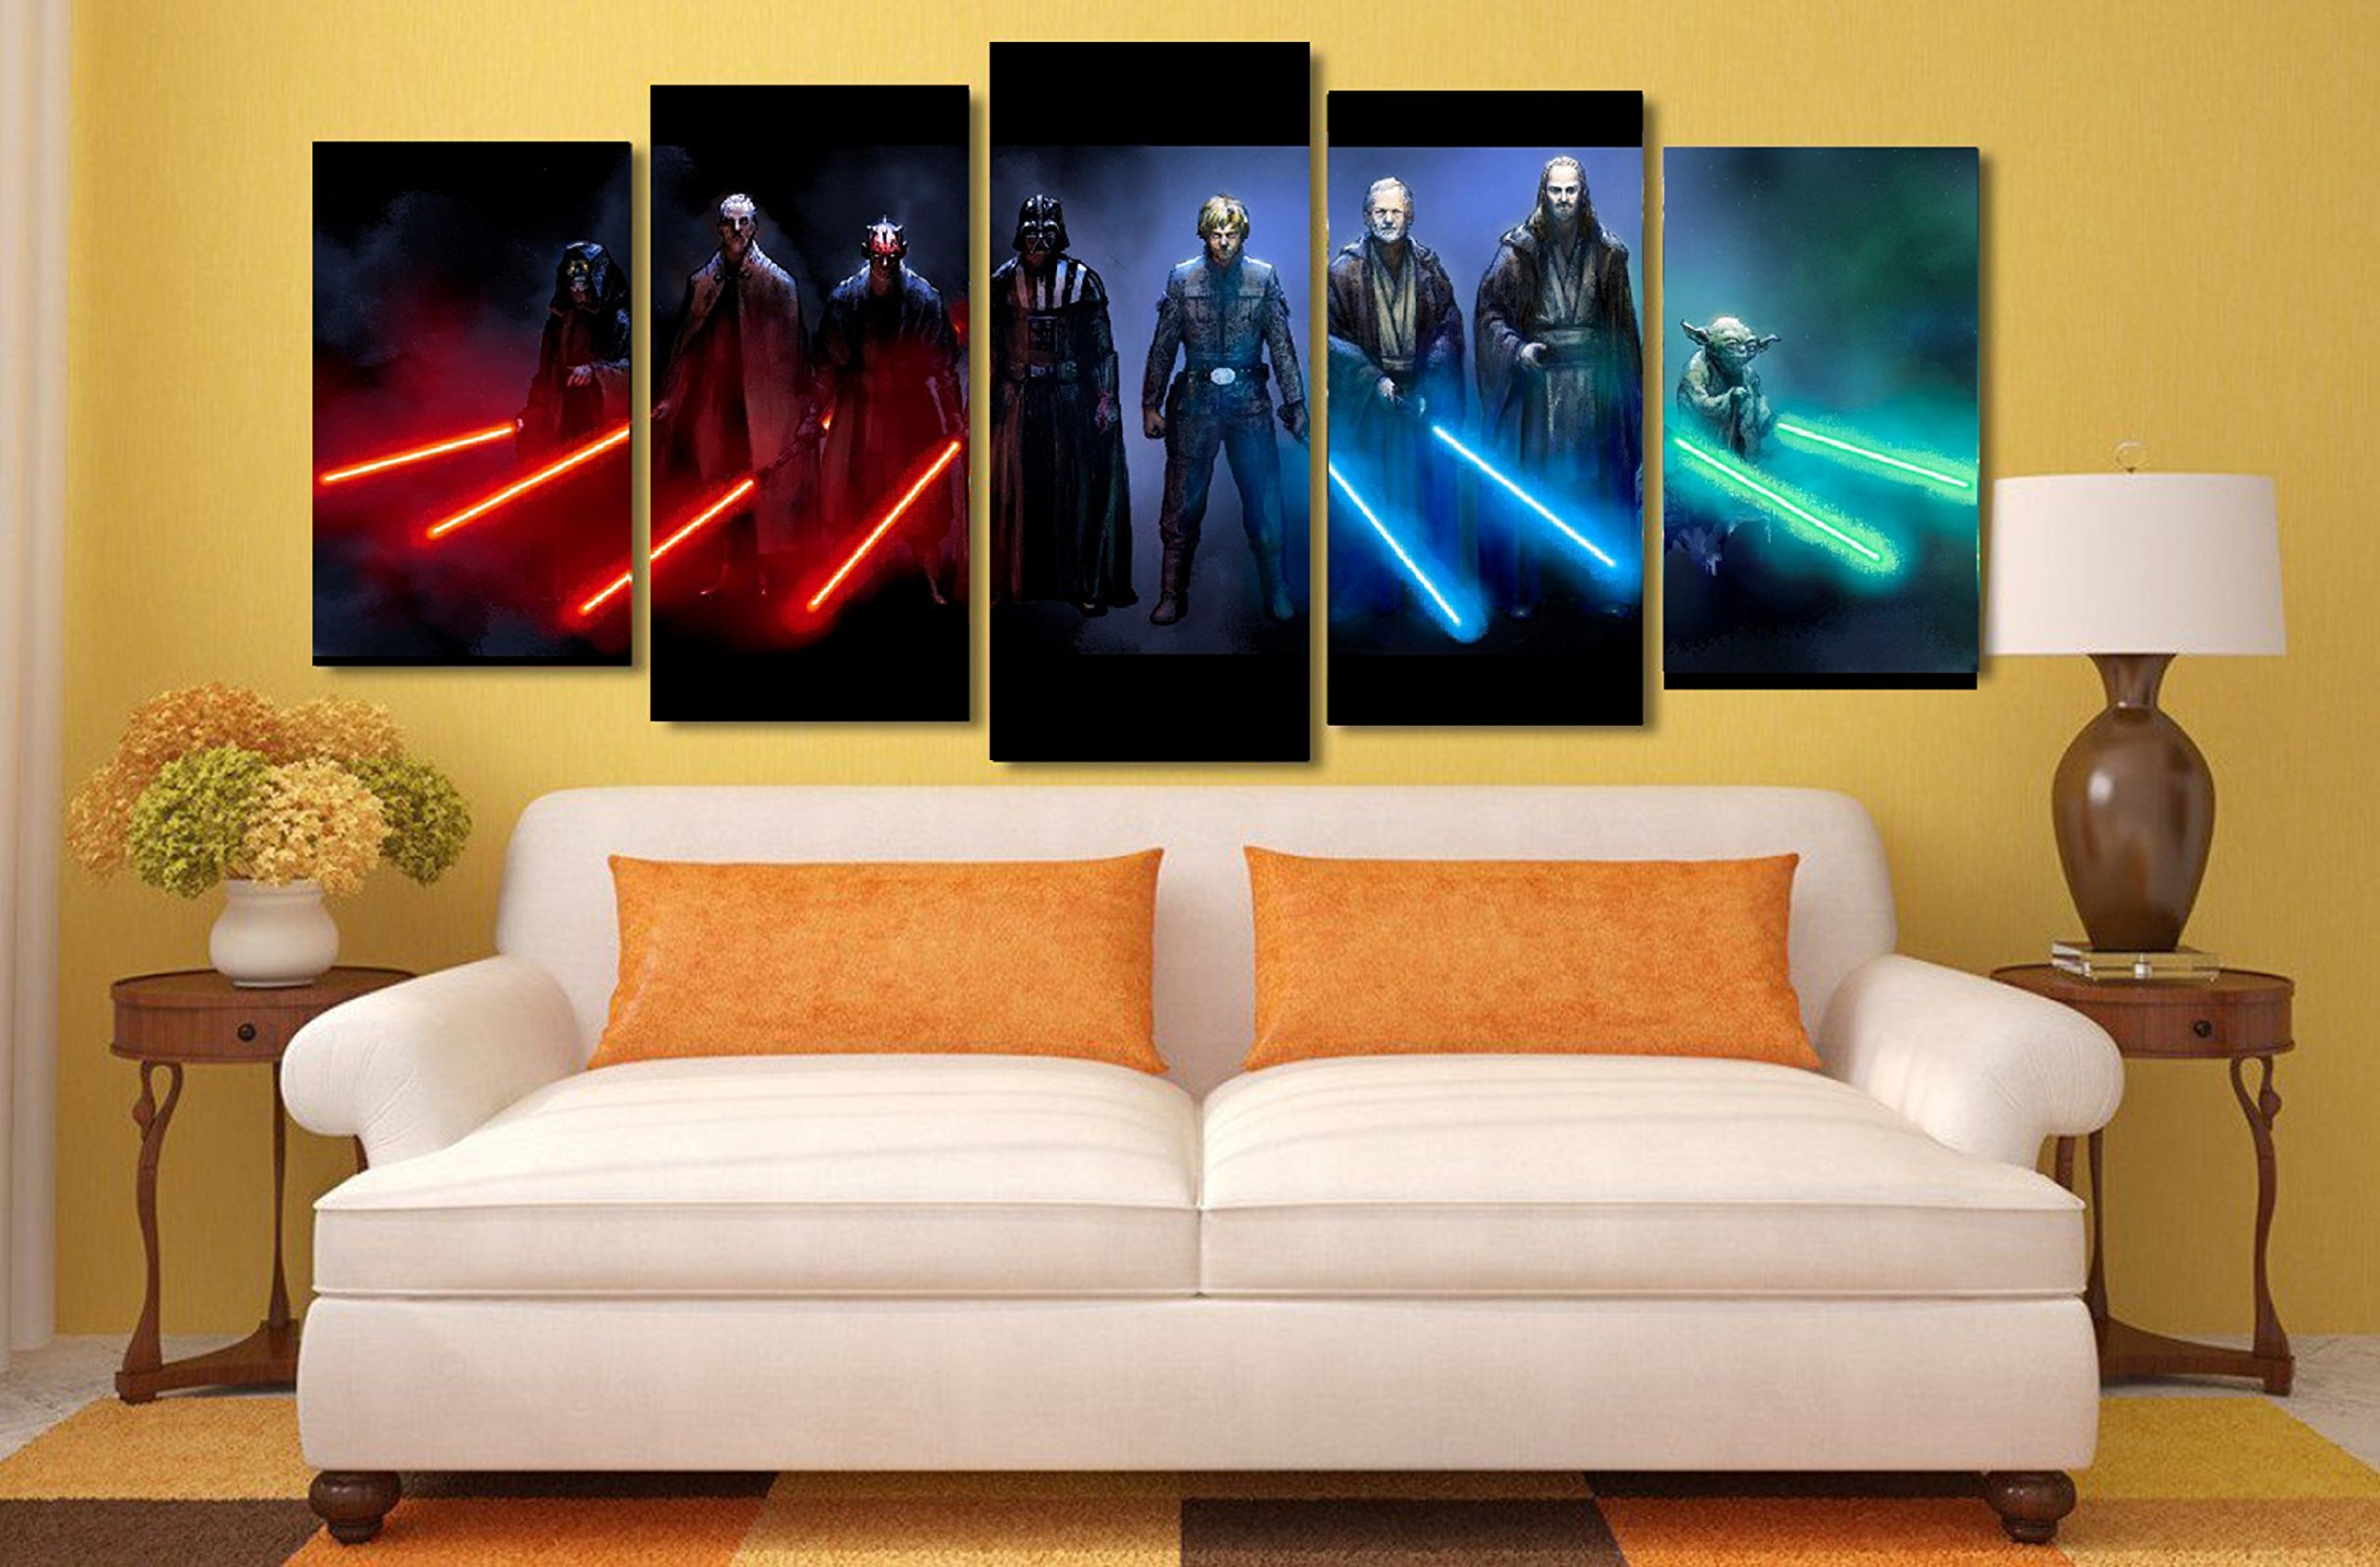 Star Wars lightsabers design modular pictures painting wall art decor home room decoration canvas printed. Gift idea for men and women. (Small)